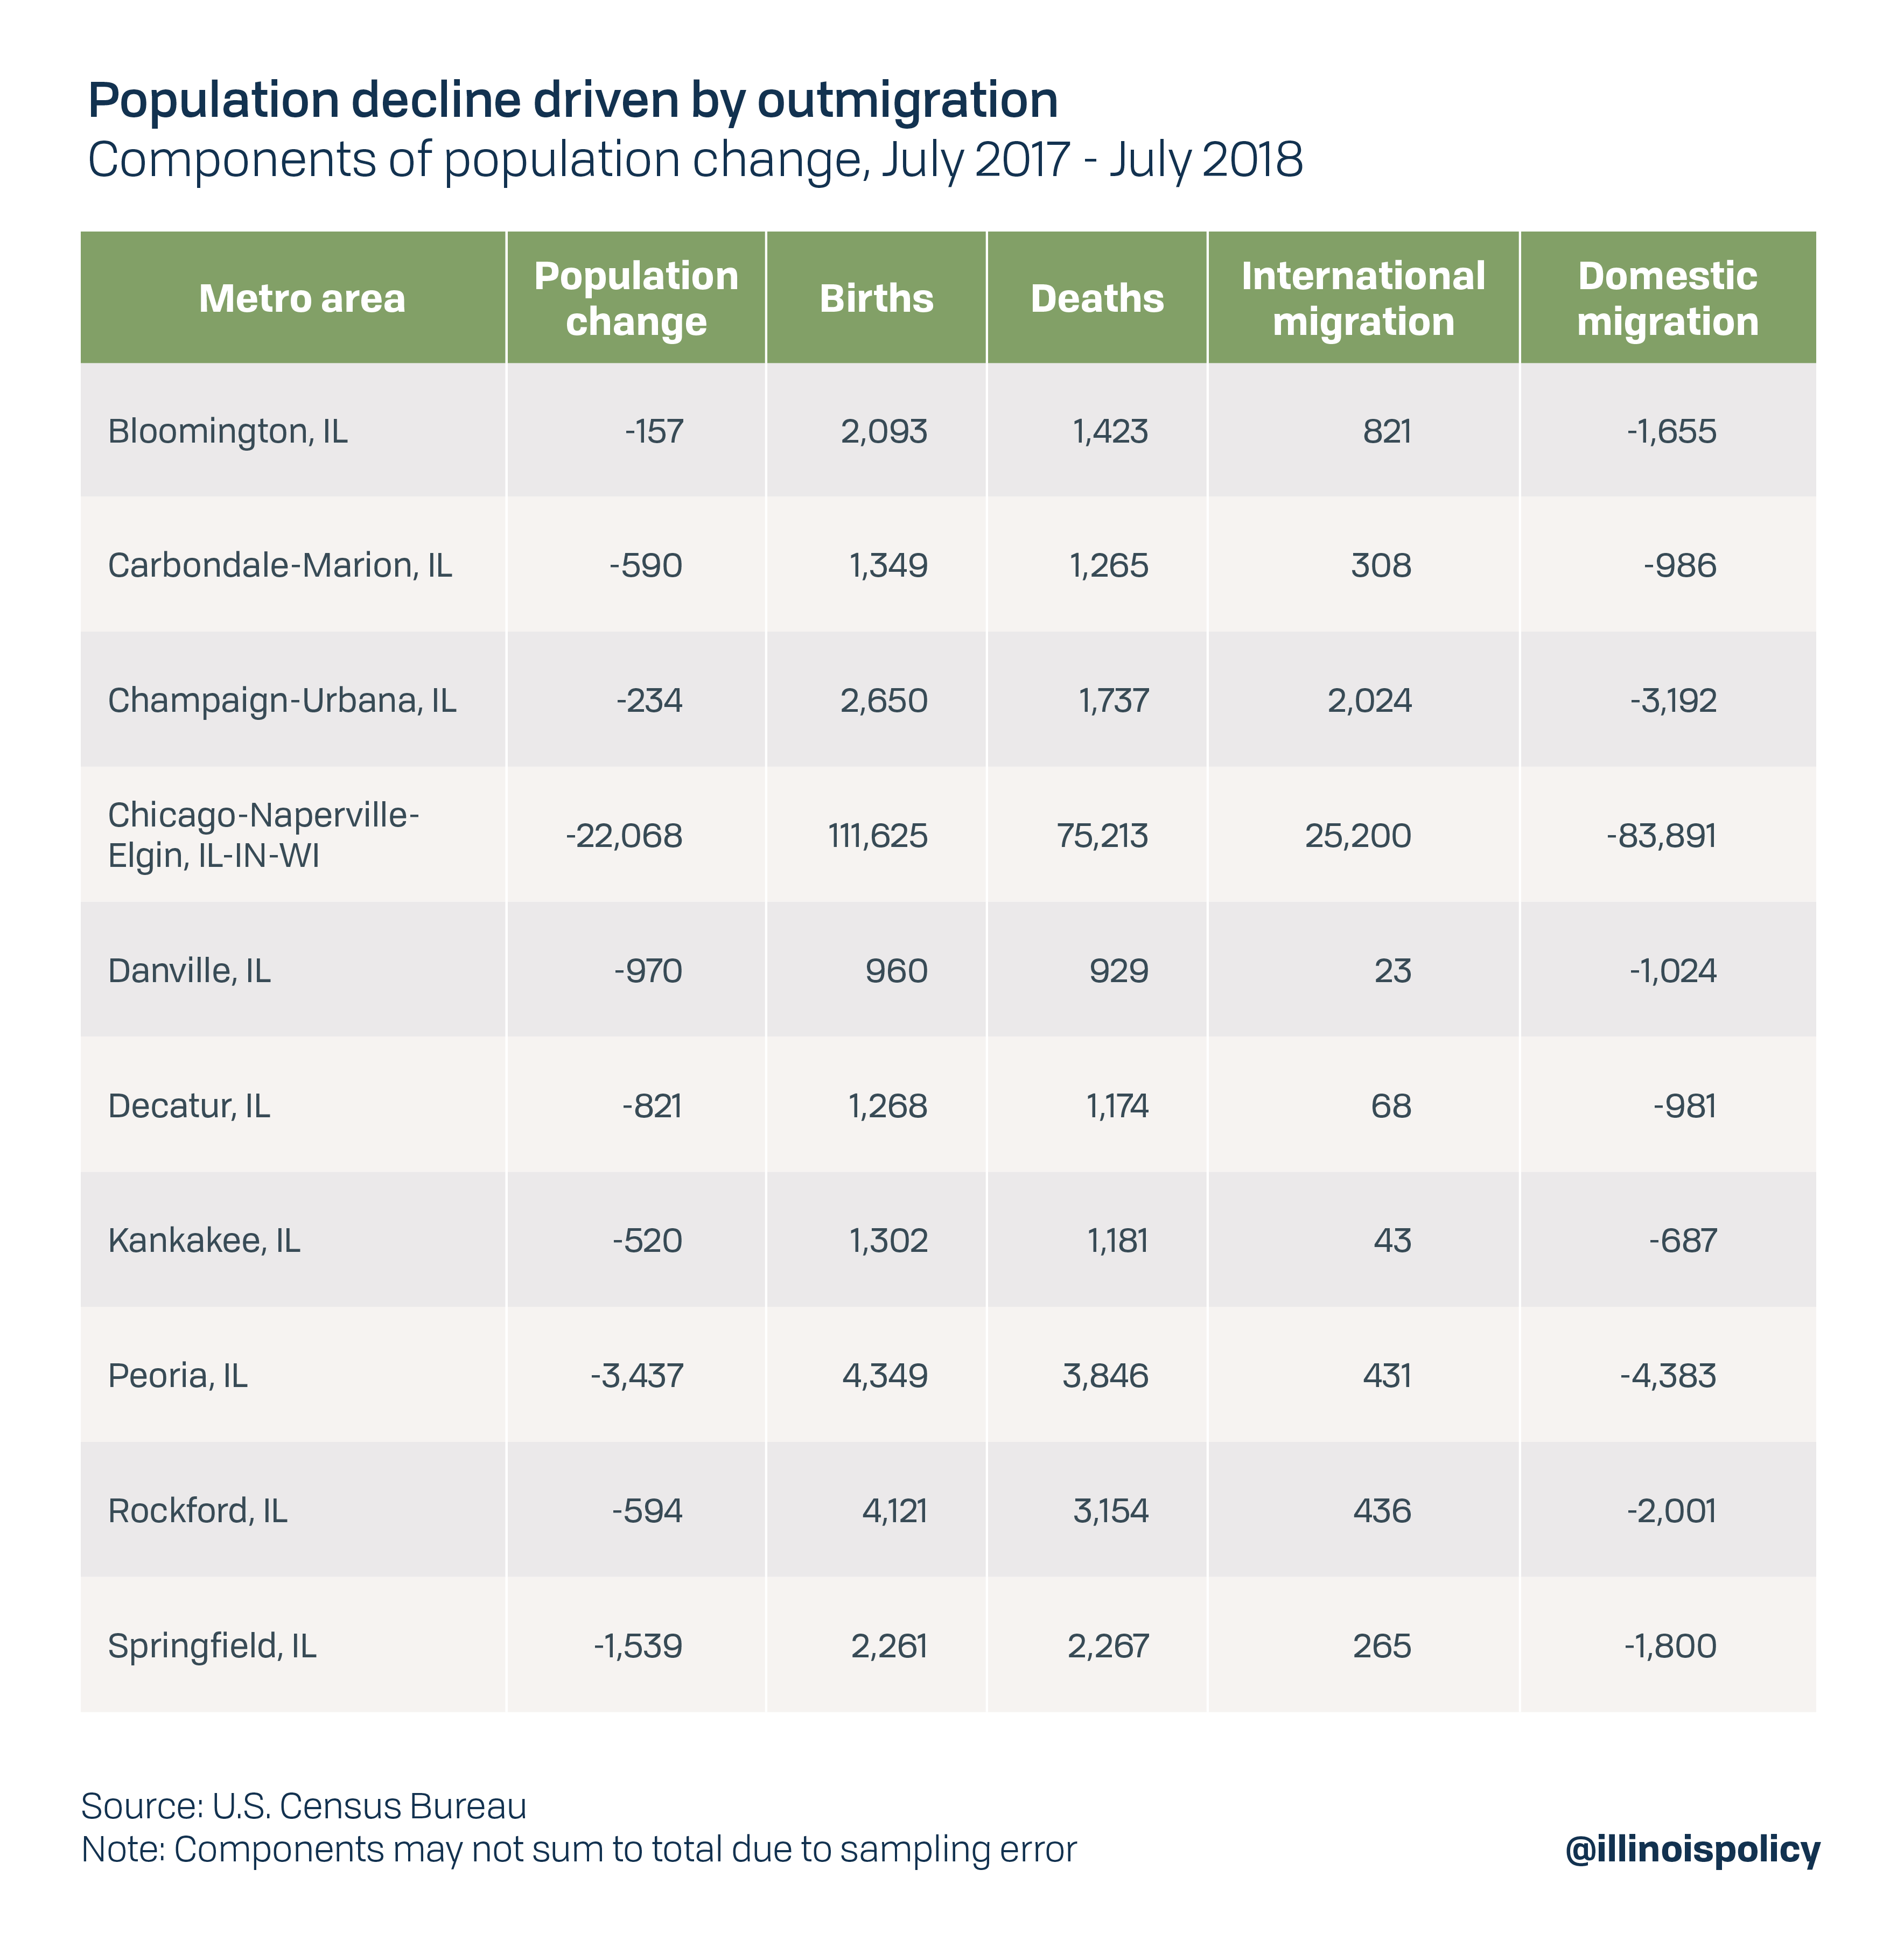 Population decline driven by outmigration